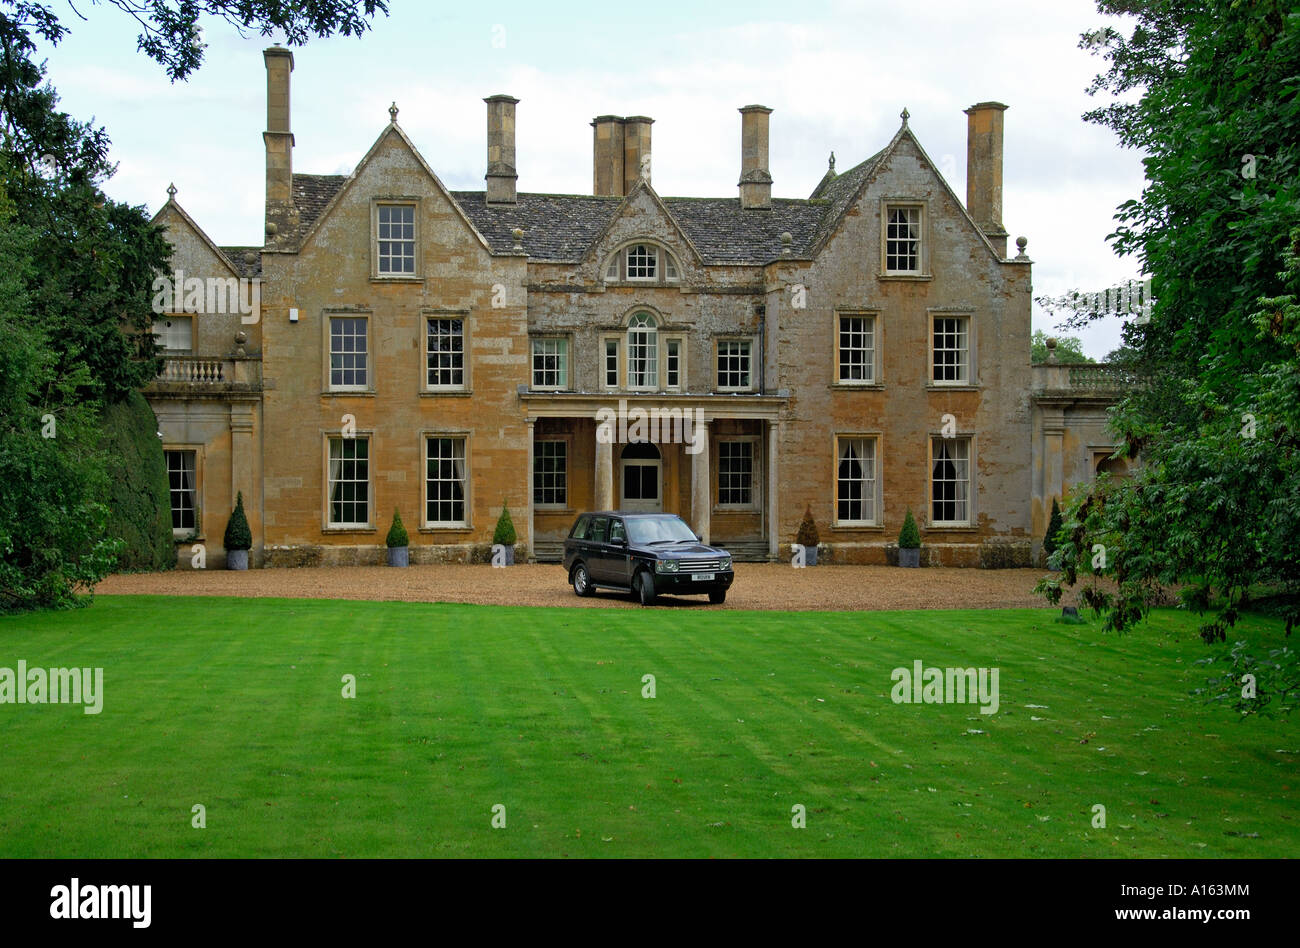 Range rover in front of english country house stock photo for Country house online